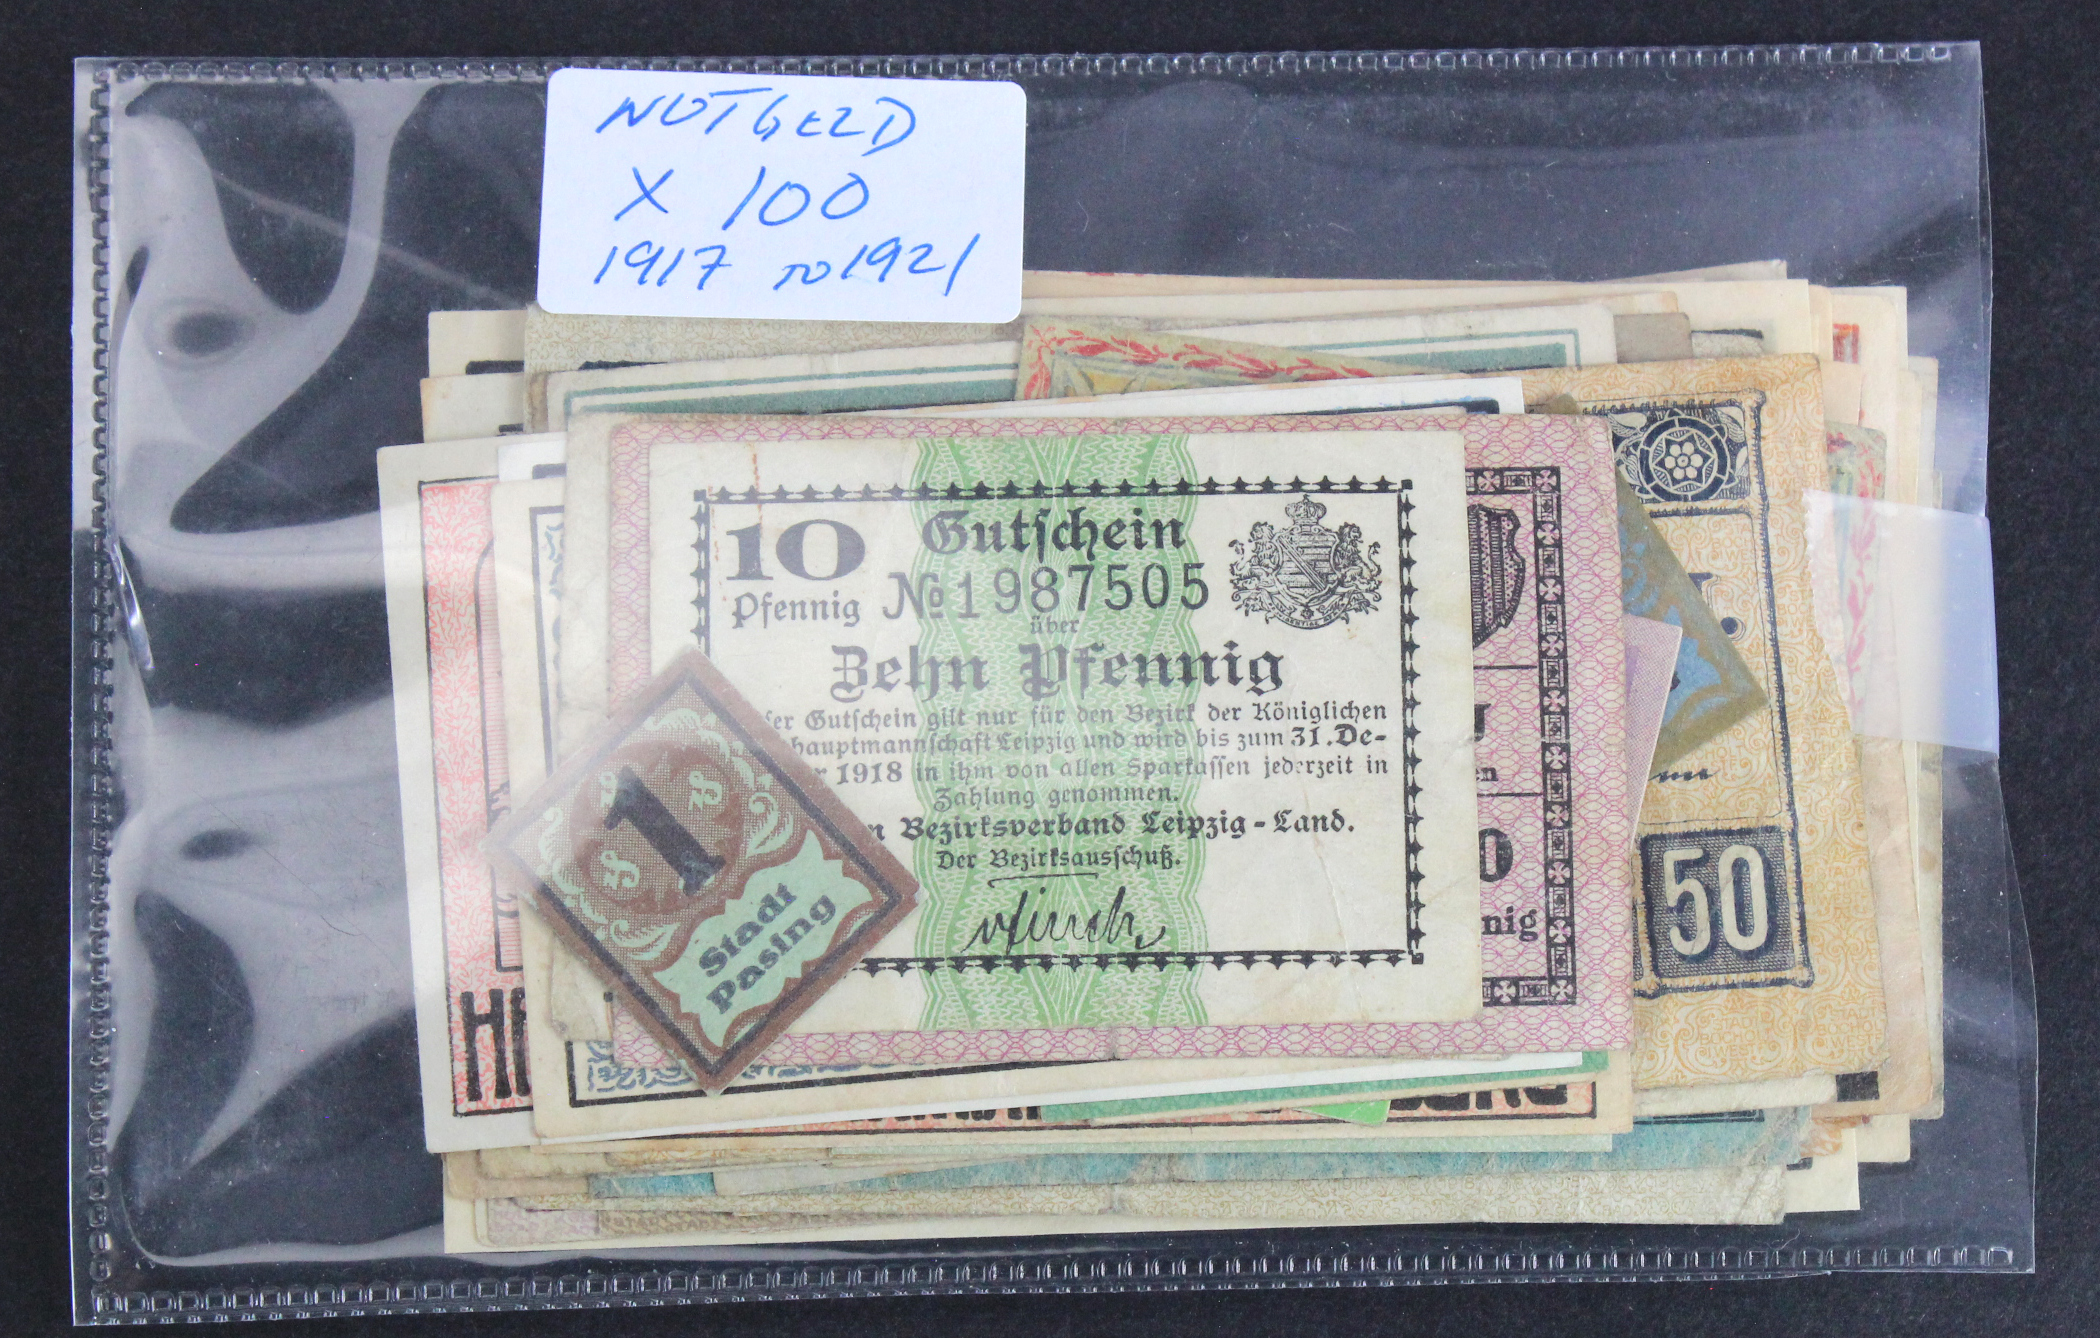 Germany Notgeld (100), a mixed collection of towns/cities seen, issued 1917 - 1921 in mixed grades